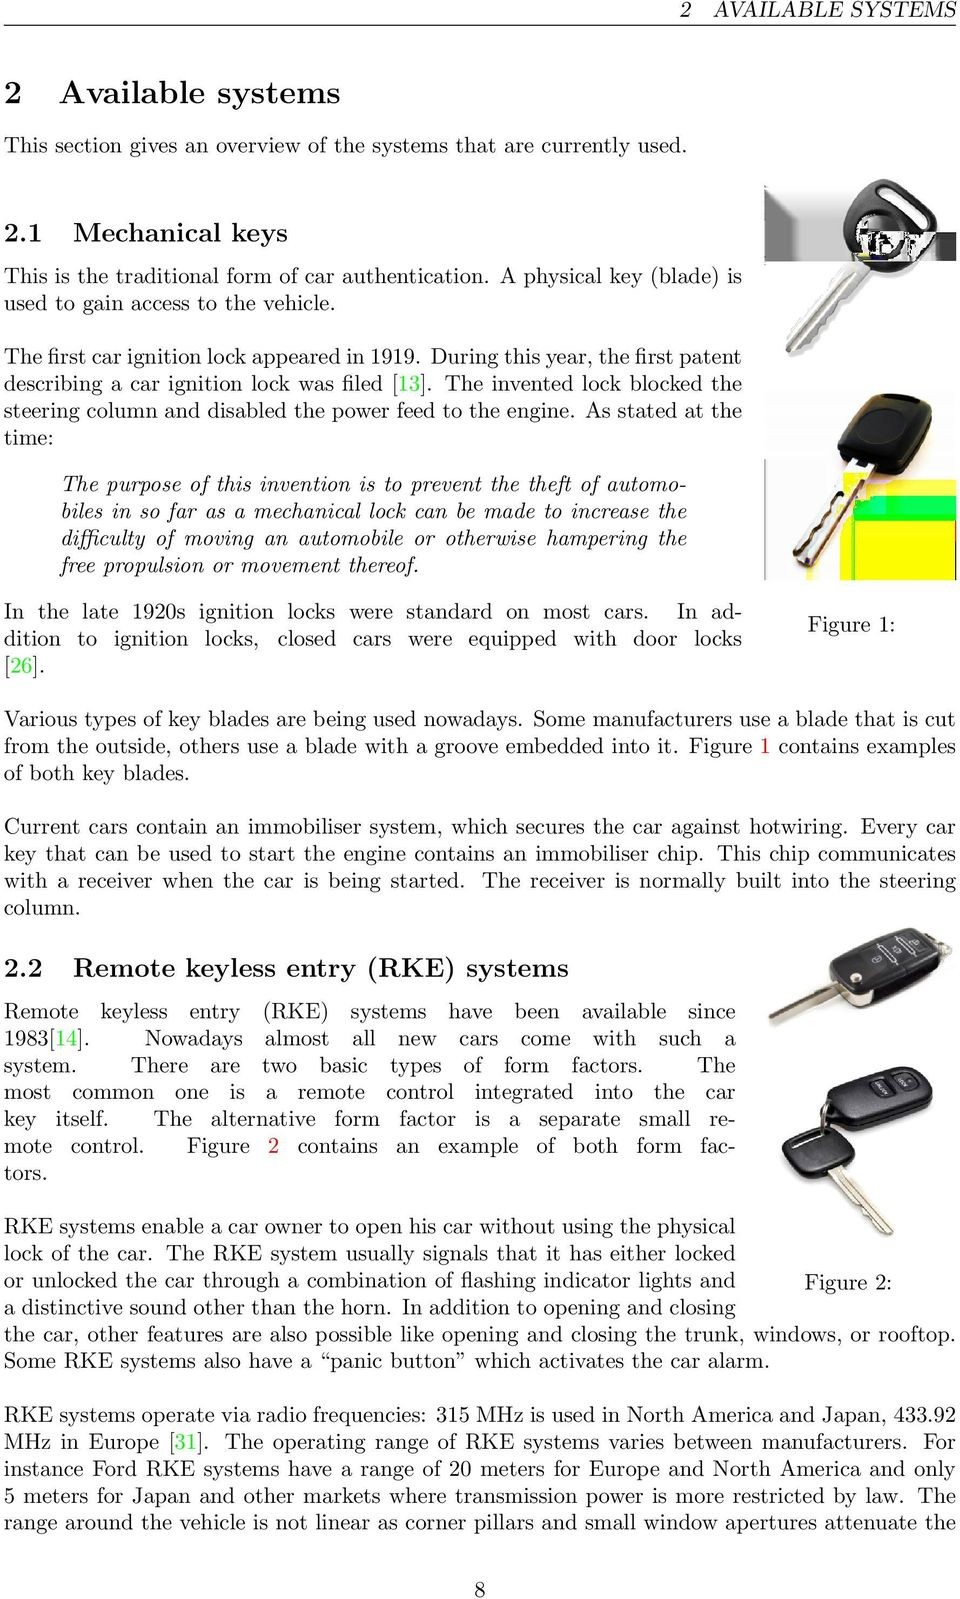 Car Security Remote Keyless Entry And Go Pdf Hot Wiring A The Invented Lock Blocked Steering Column Disabled Power Feed To Engine